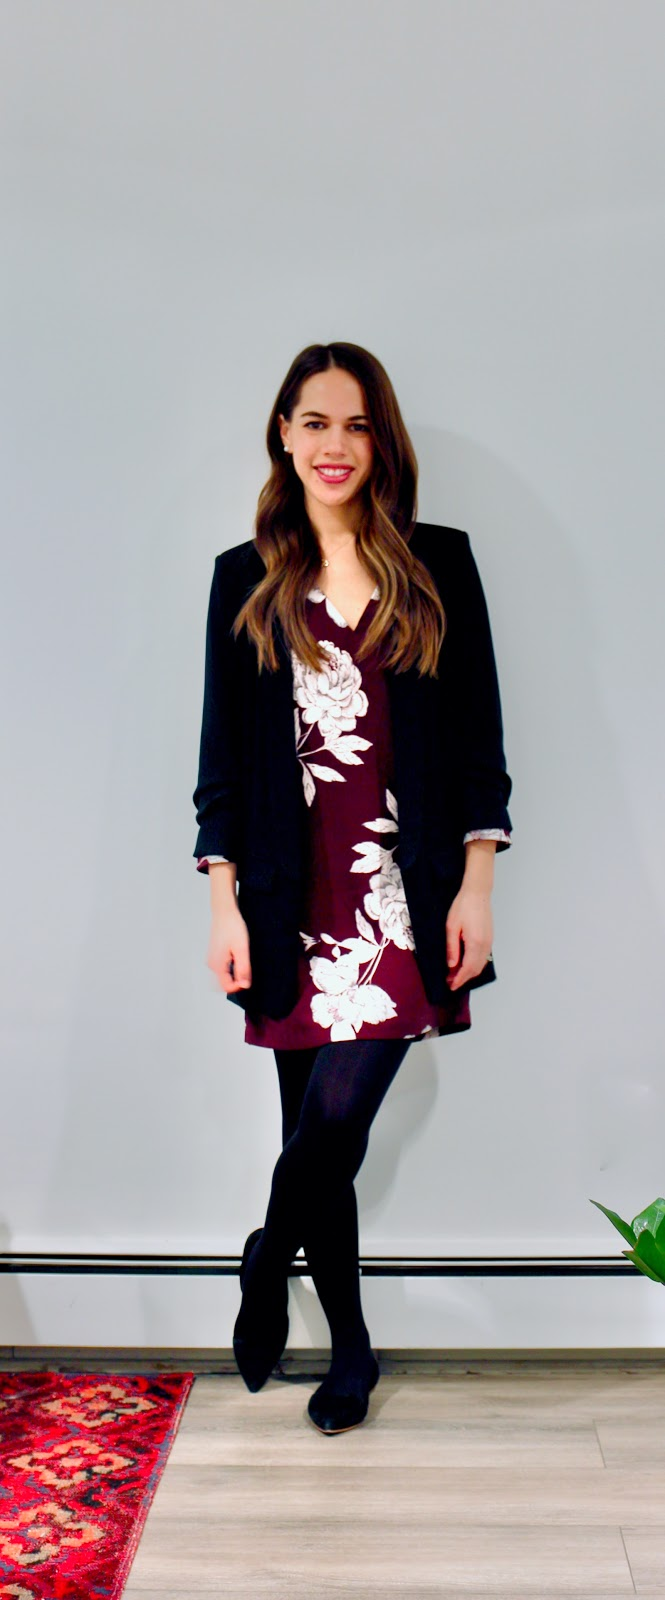 Jules in Flats - Oversize Floral Shift Dress + Zara Blazer (Business Casual Winter Workwear on a Budget)